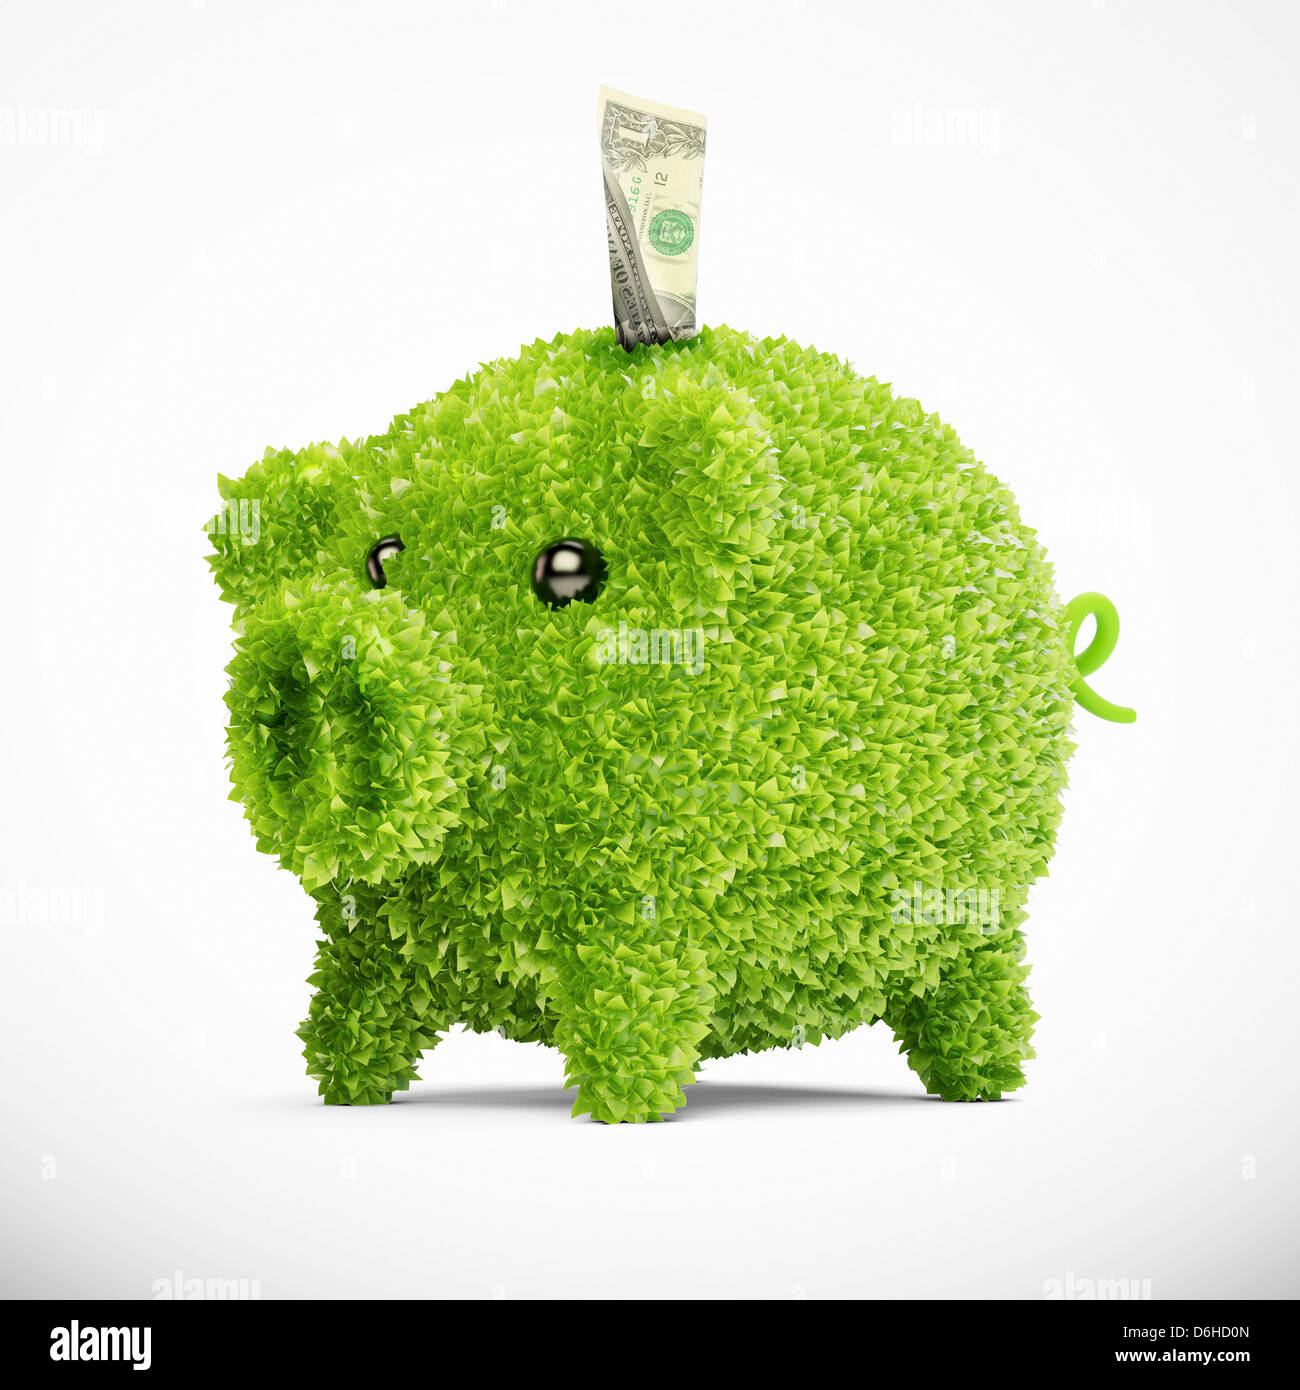 Green investment, conceptual artwork - Stock Image